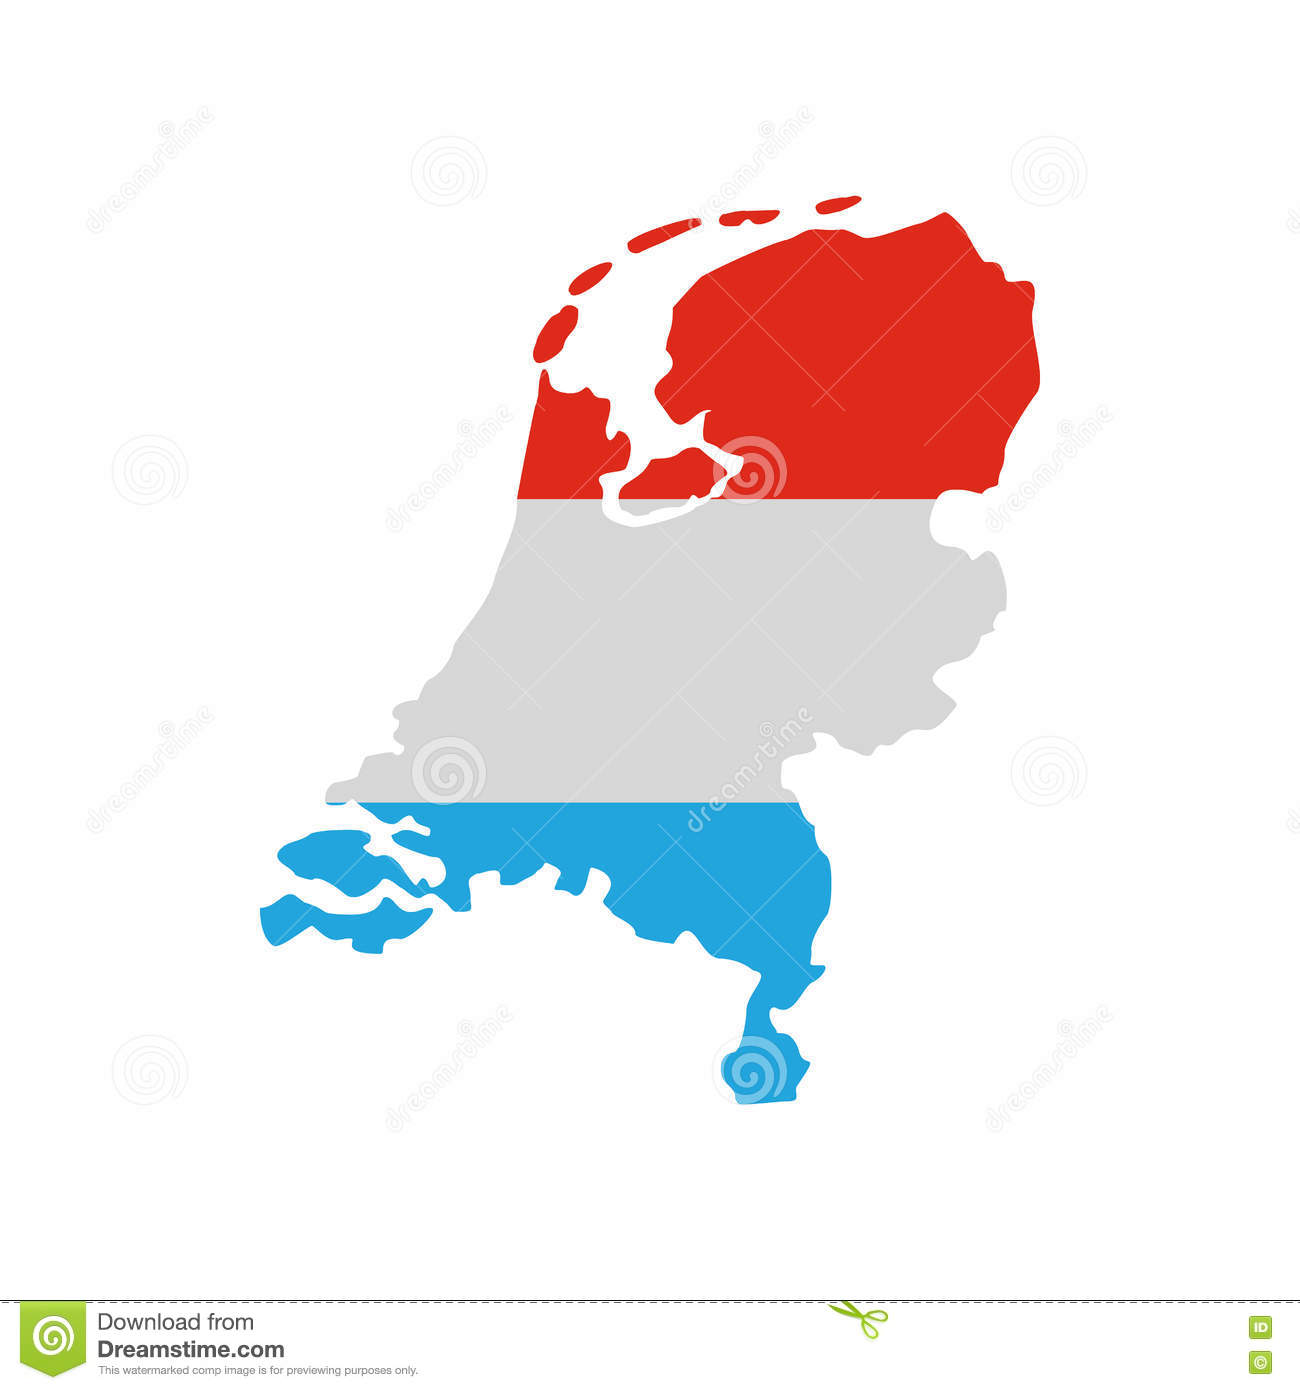 Map of the netherlands in dutch flag colors icon stock vector map of the netherlands in dutch flag colors icon gumiabroncs Choice Image